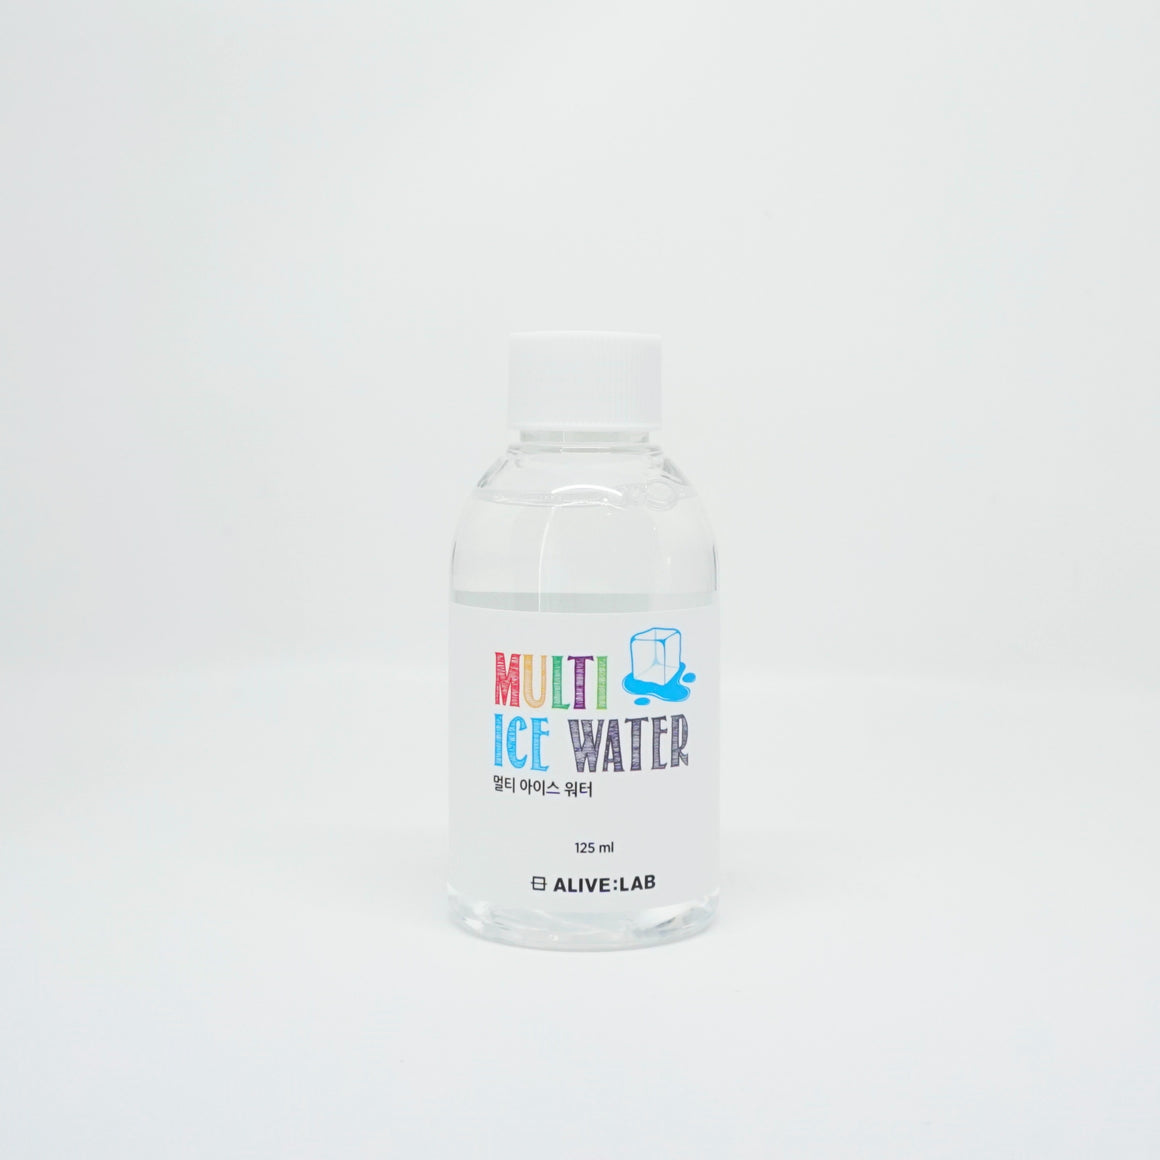 ALIVE:LAB Multi Ice Water